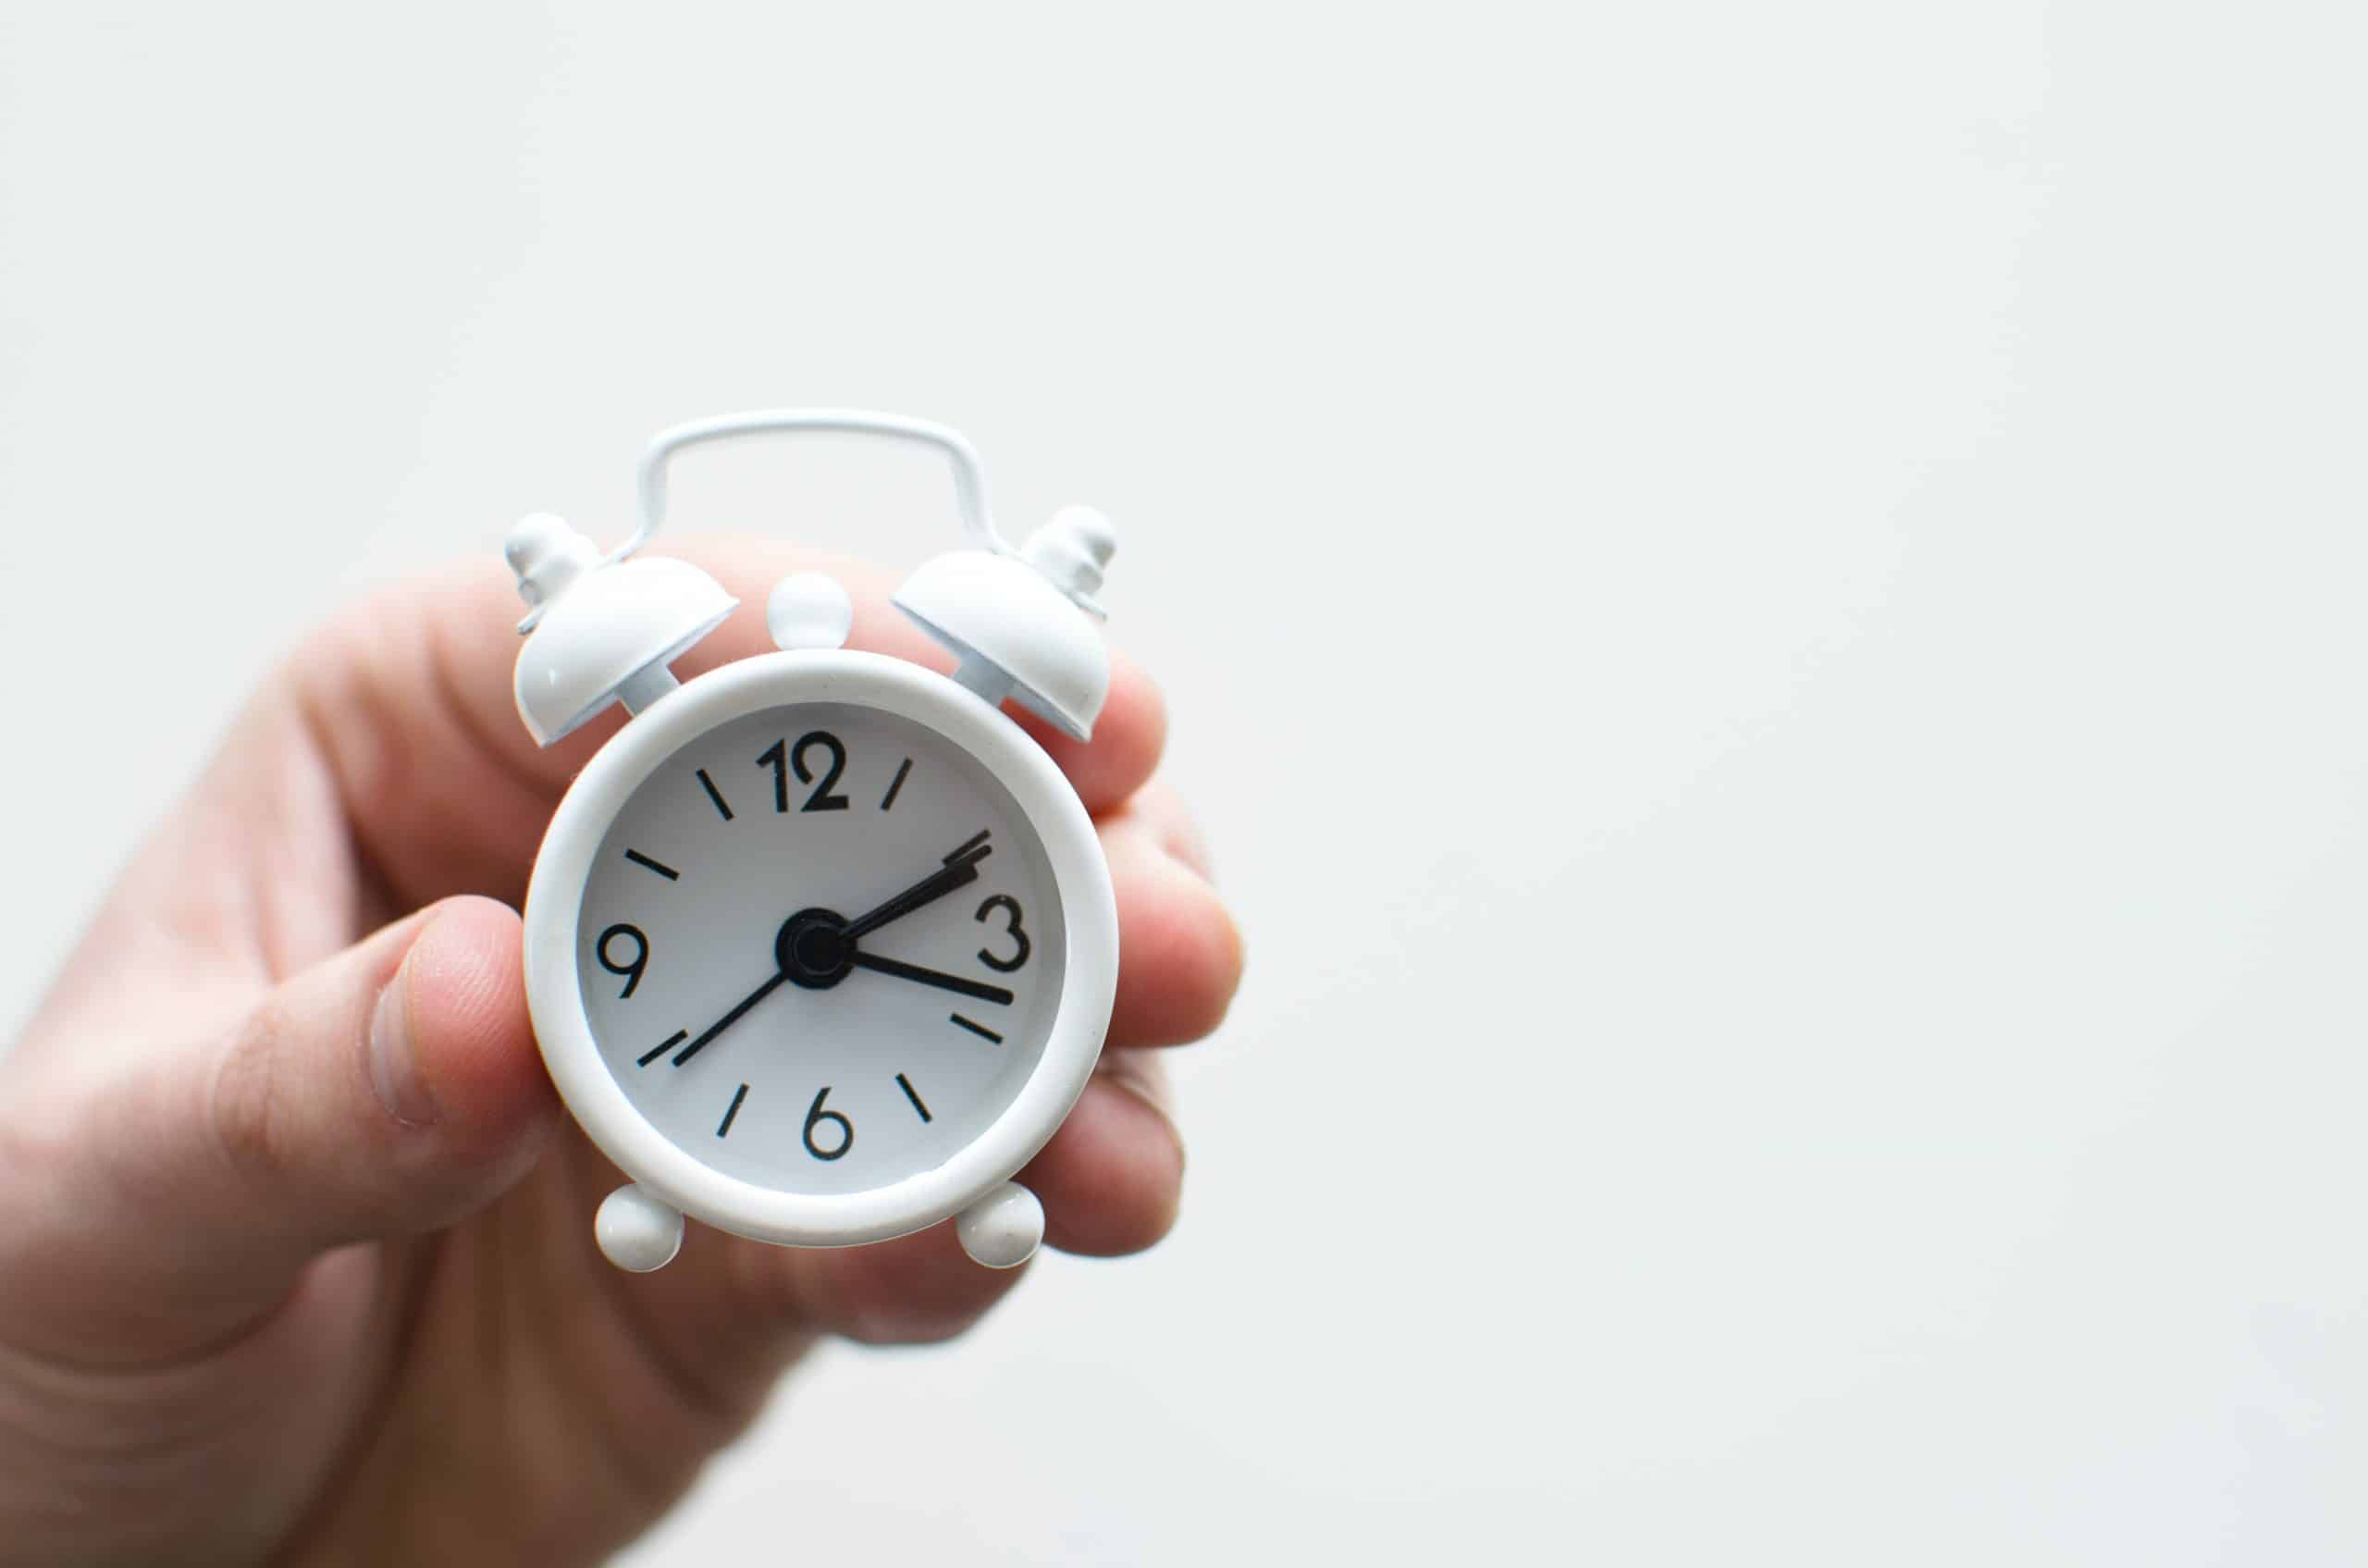 law firm time tracking software